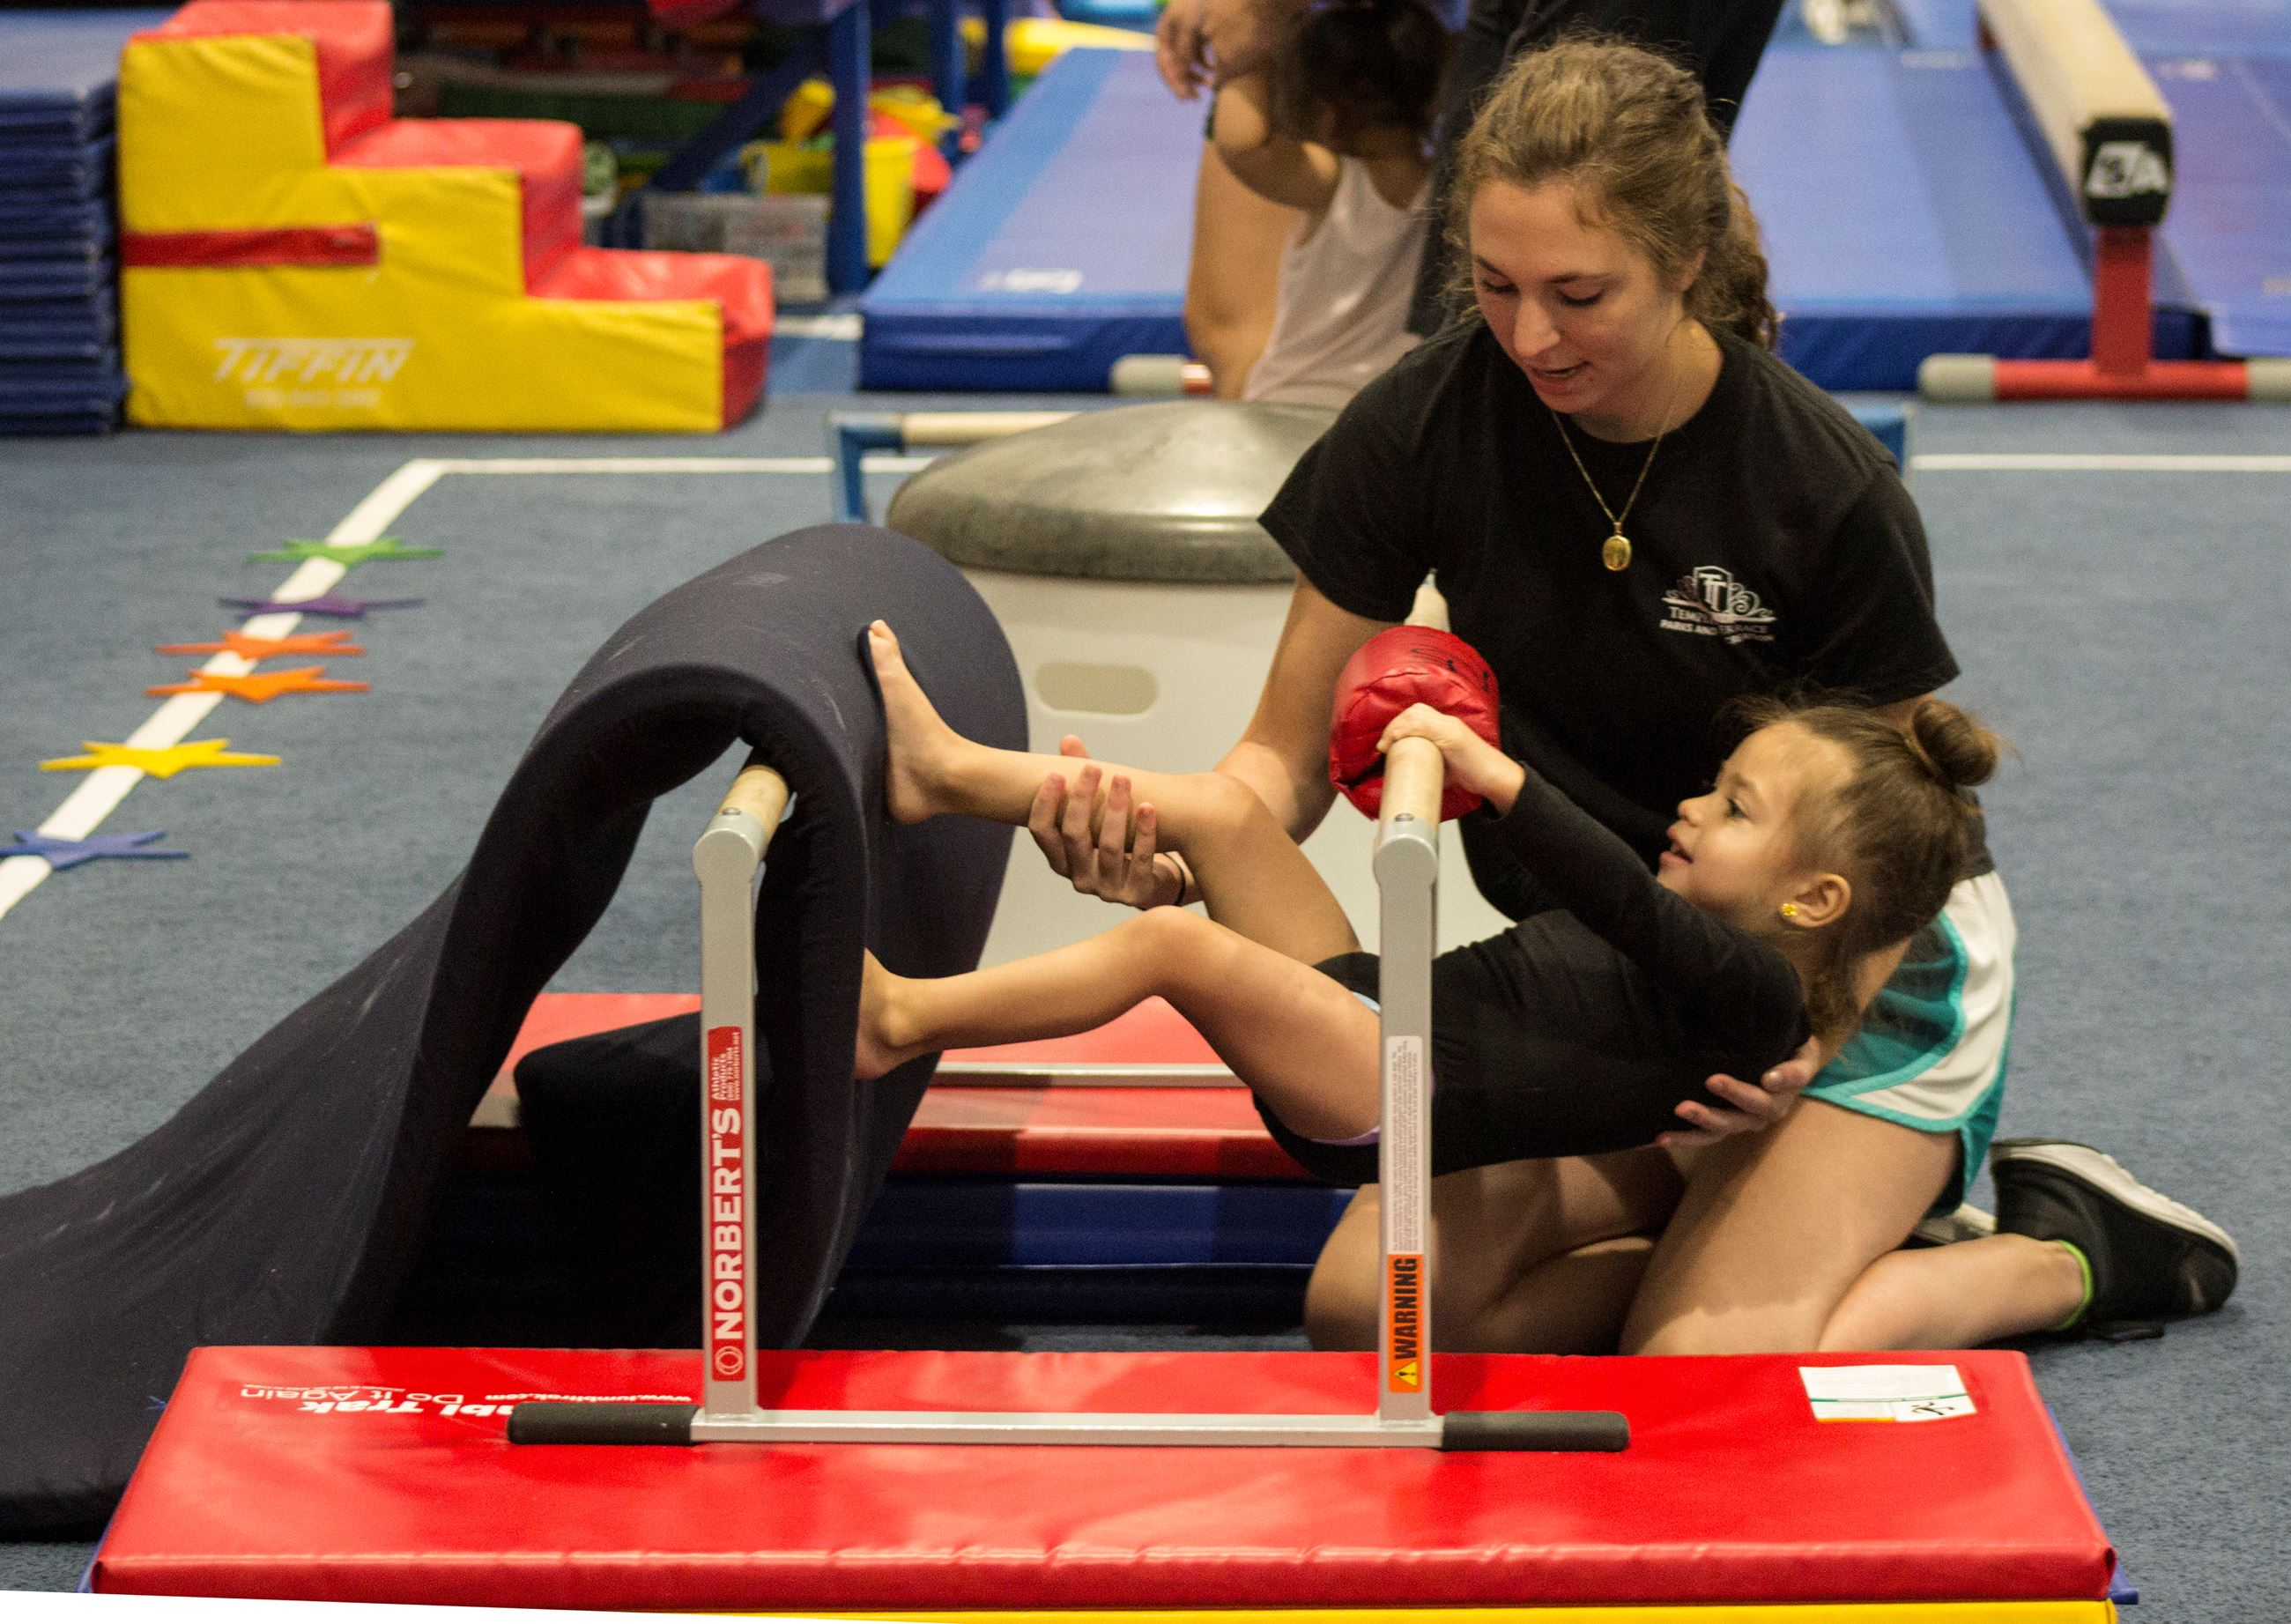 A gymnastics instructor helps a child tumble